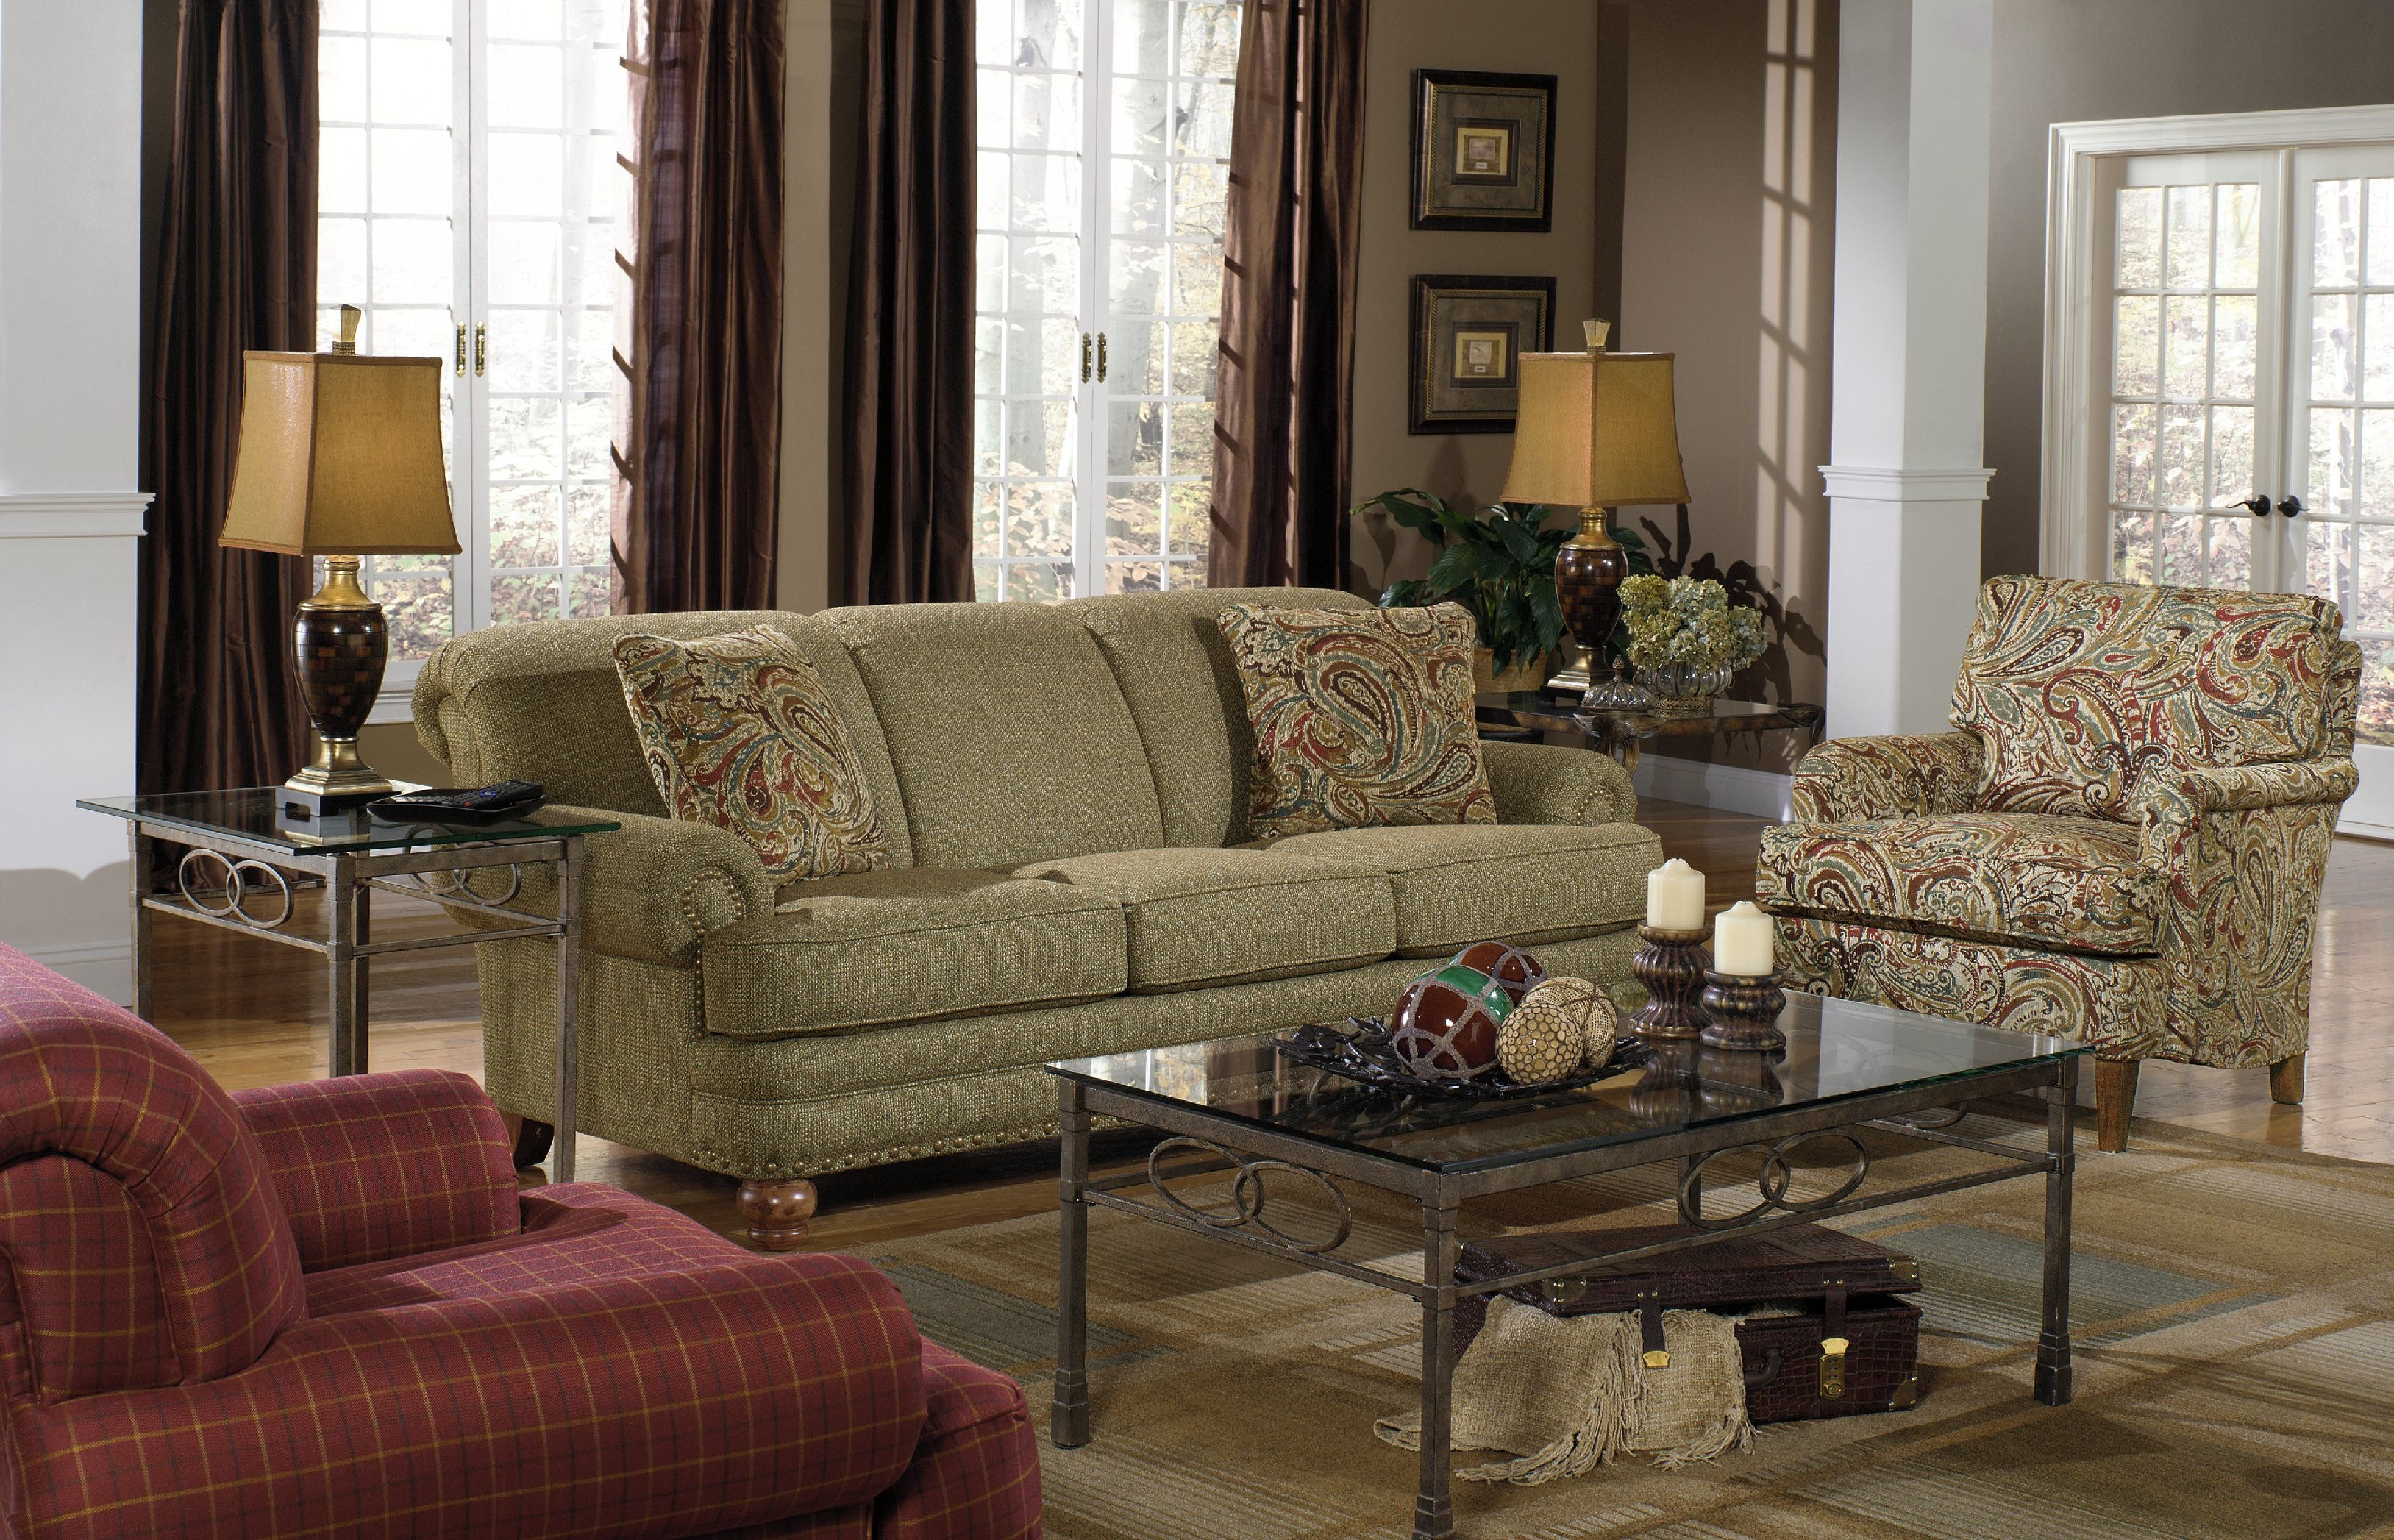 craftmaster sofa prices where to sell used in singapore living room 728150 toms price furniture